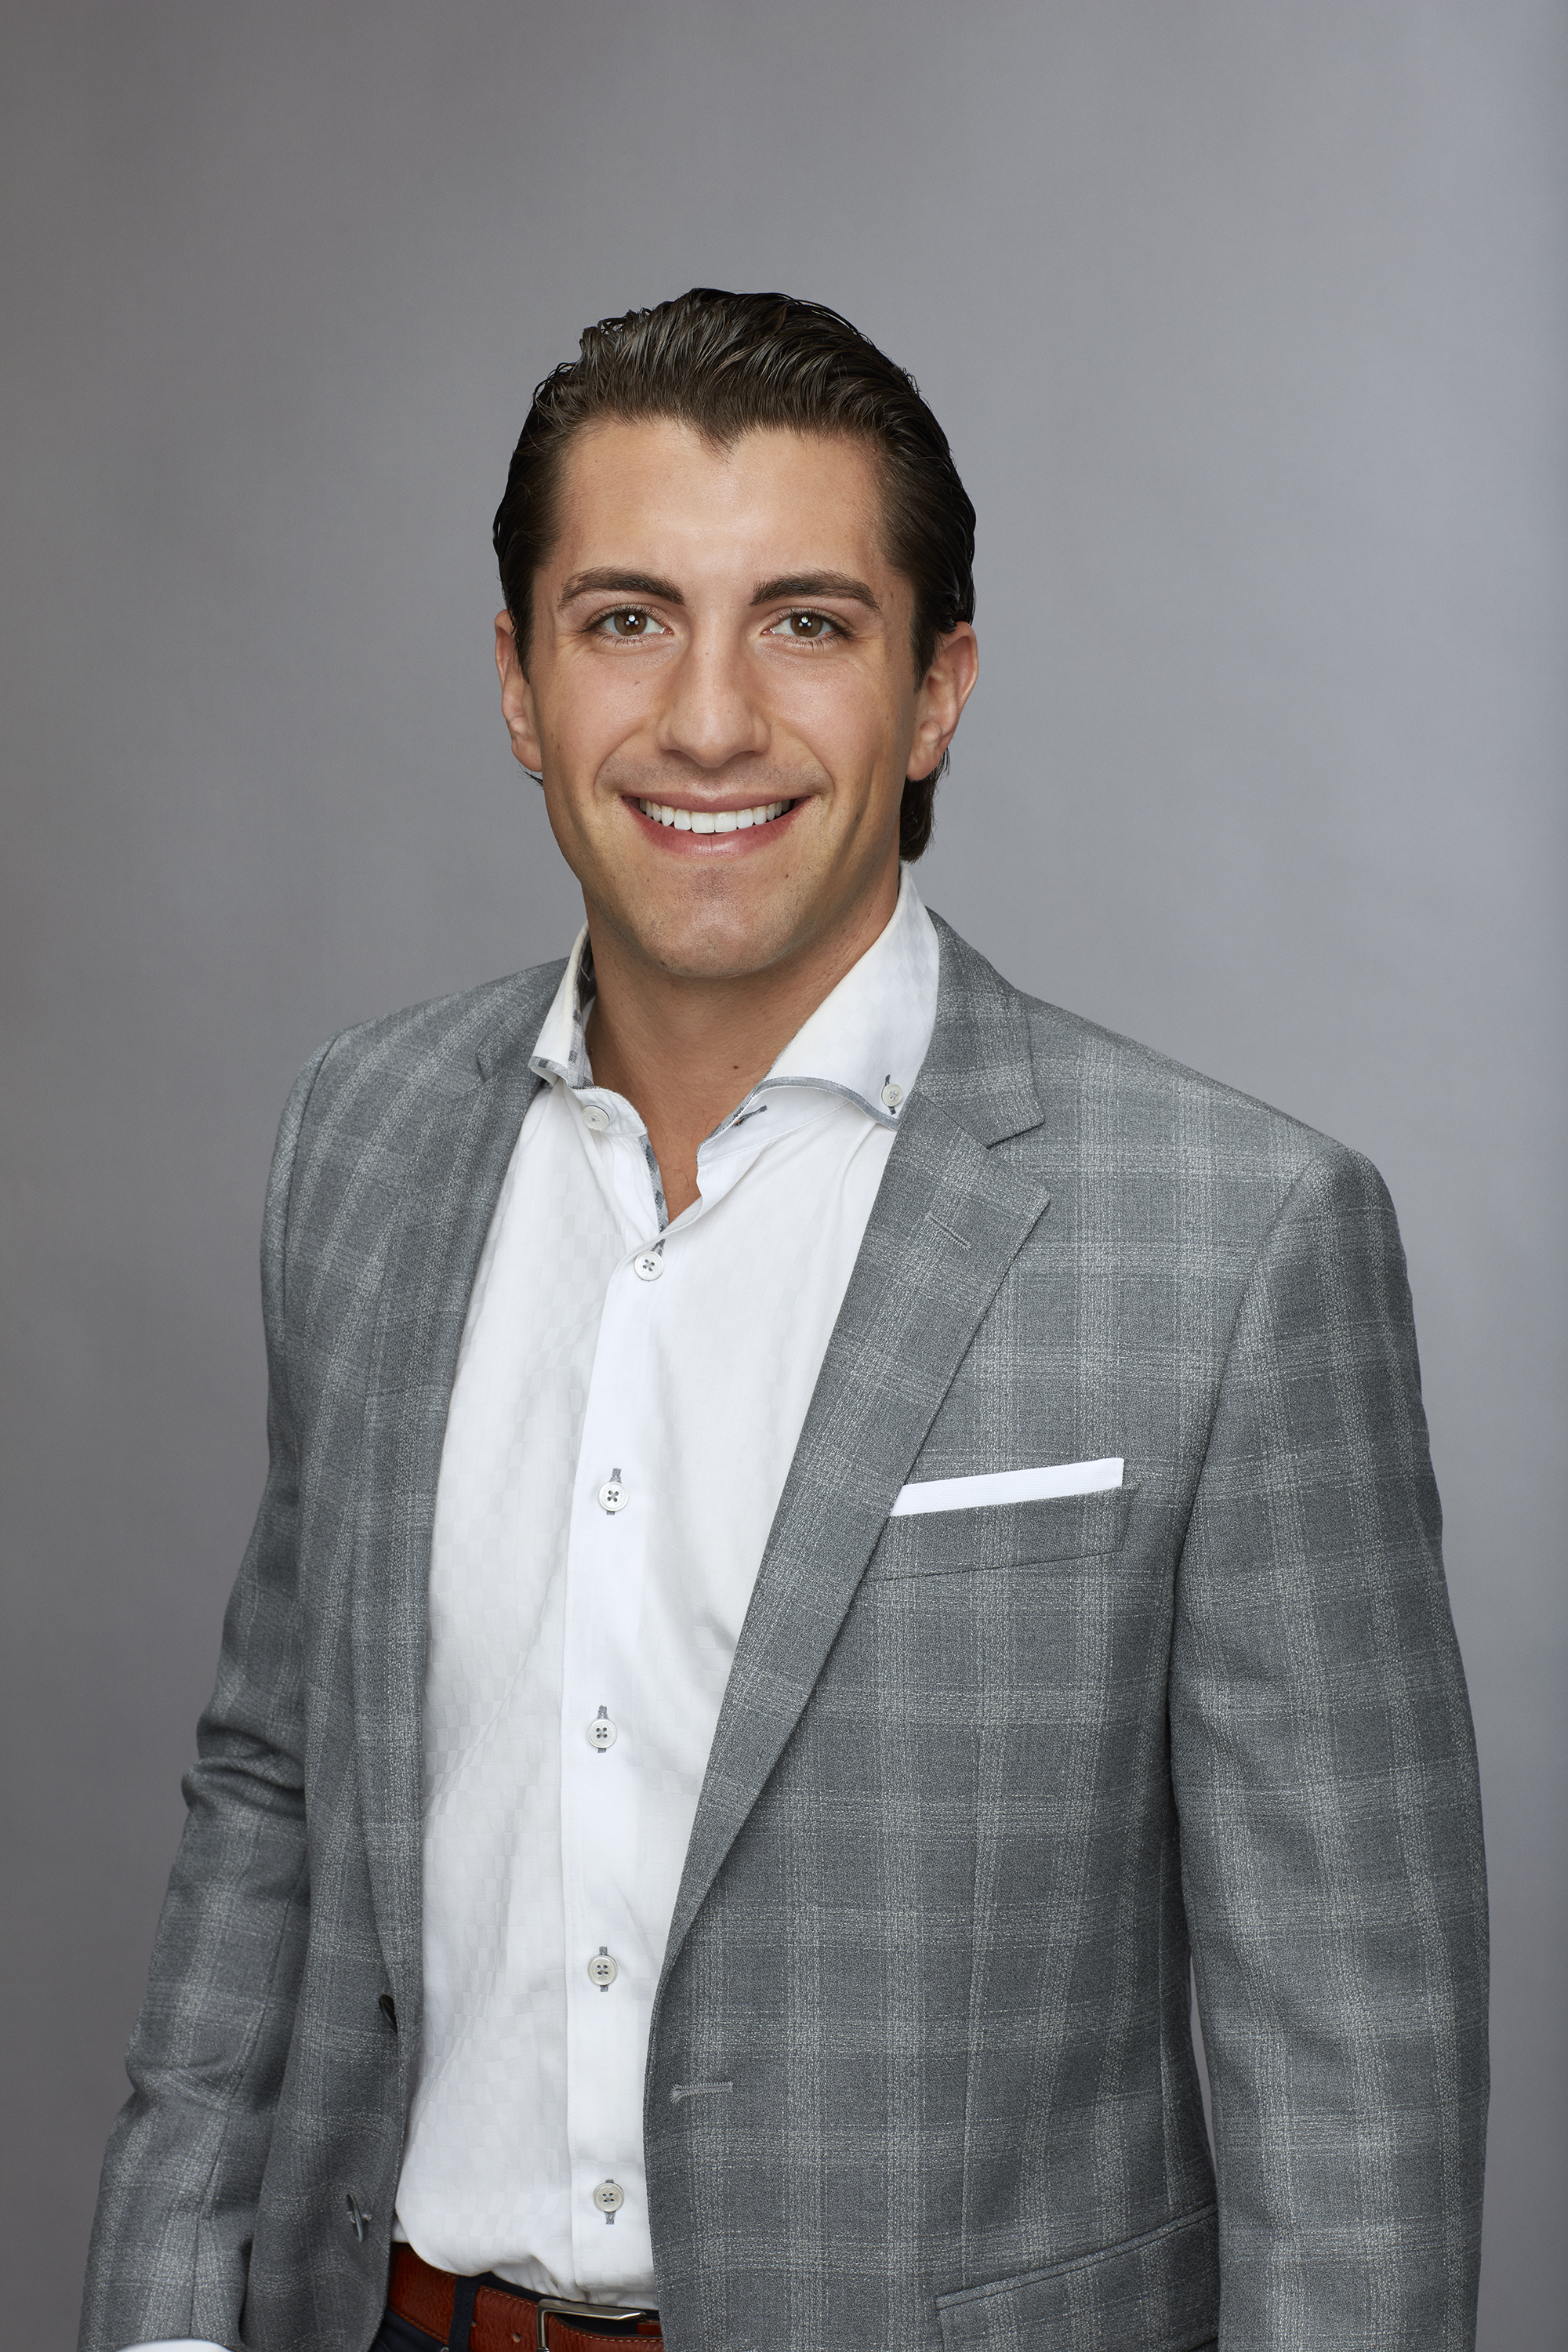 Jason, kicked off, becca kufrin, bios 2018, season 14 contestant, who went home on the bachelorette last night, tonight